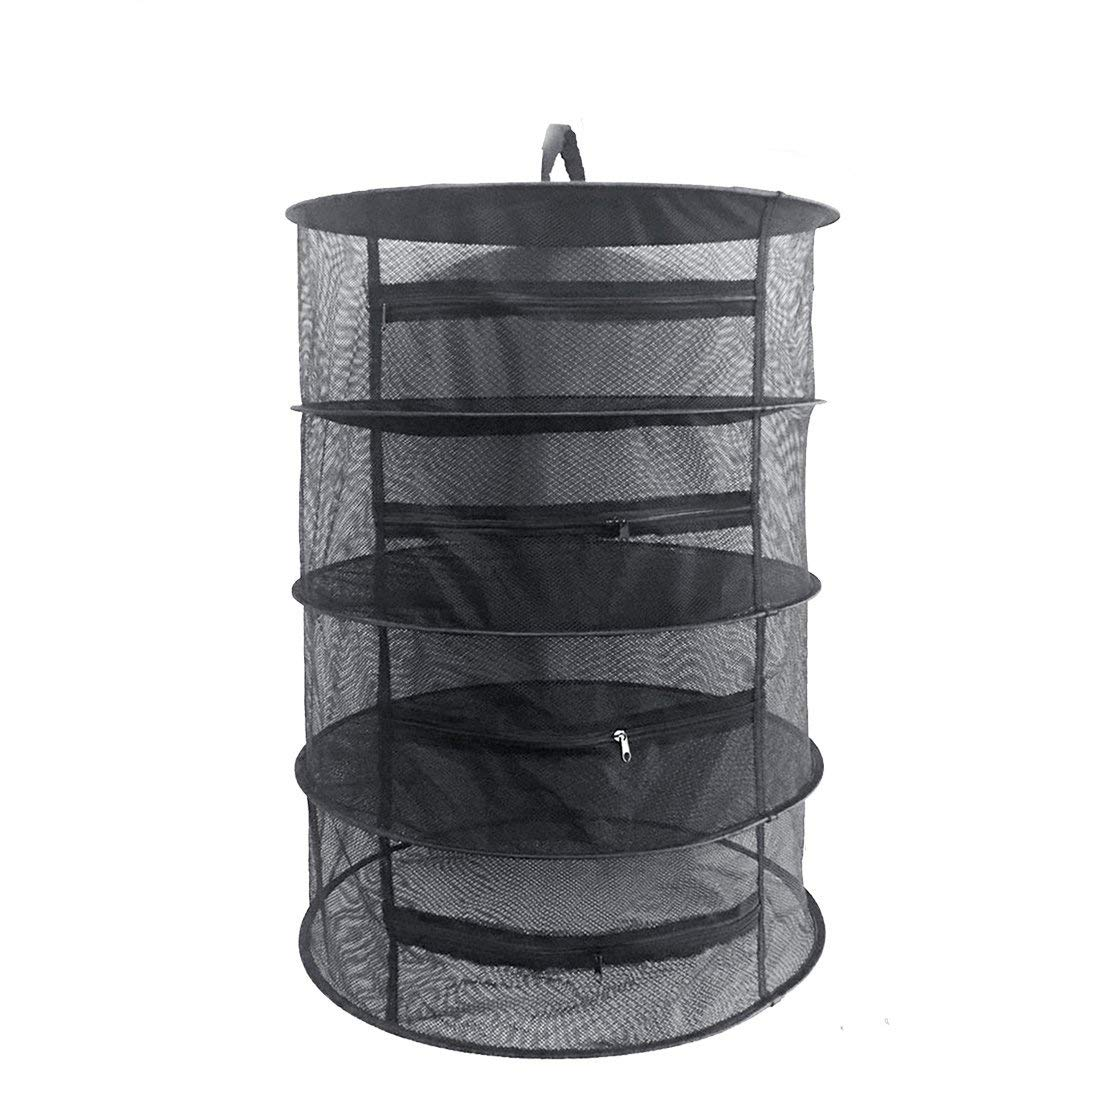 "Herb Drying Rack Net 4 Layer Herb Dryer Black Mesh Hanging Dryer Rack with Zipper (31.5""x24"")"